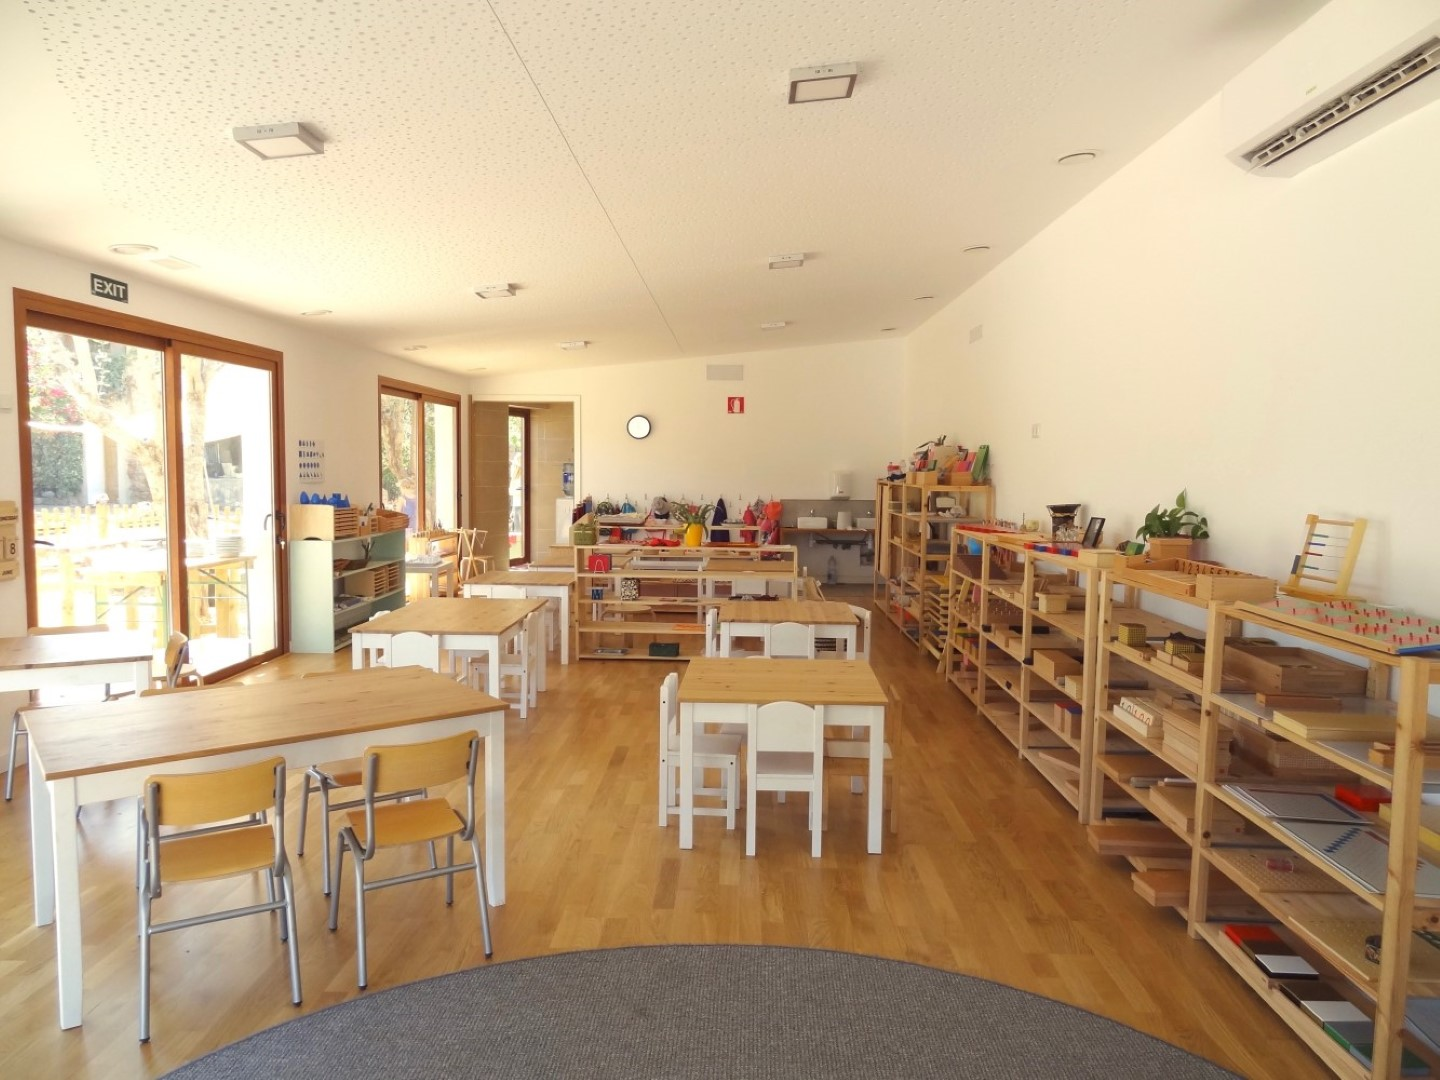 Inside the classroom for 3-6 year olds with lot of light